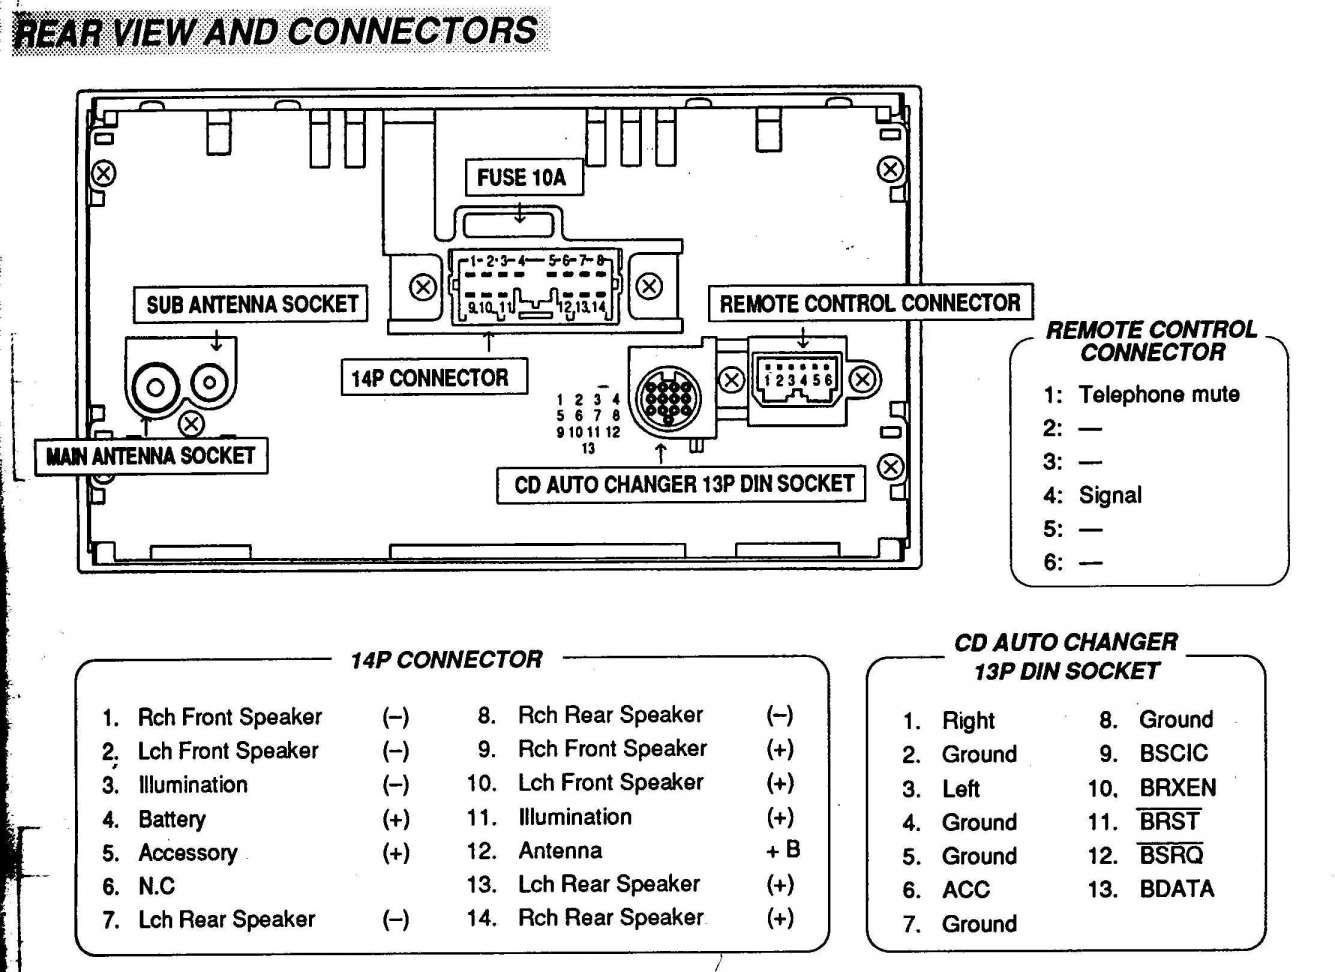 16 Mitsubishi Car Stereo Wiring Diagram Car Diagram In 2020